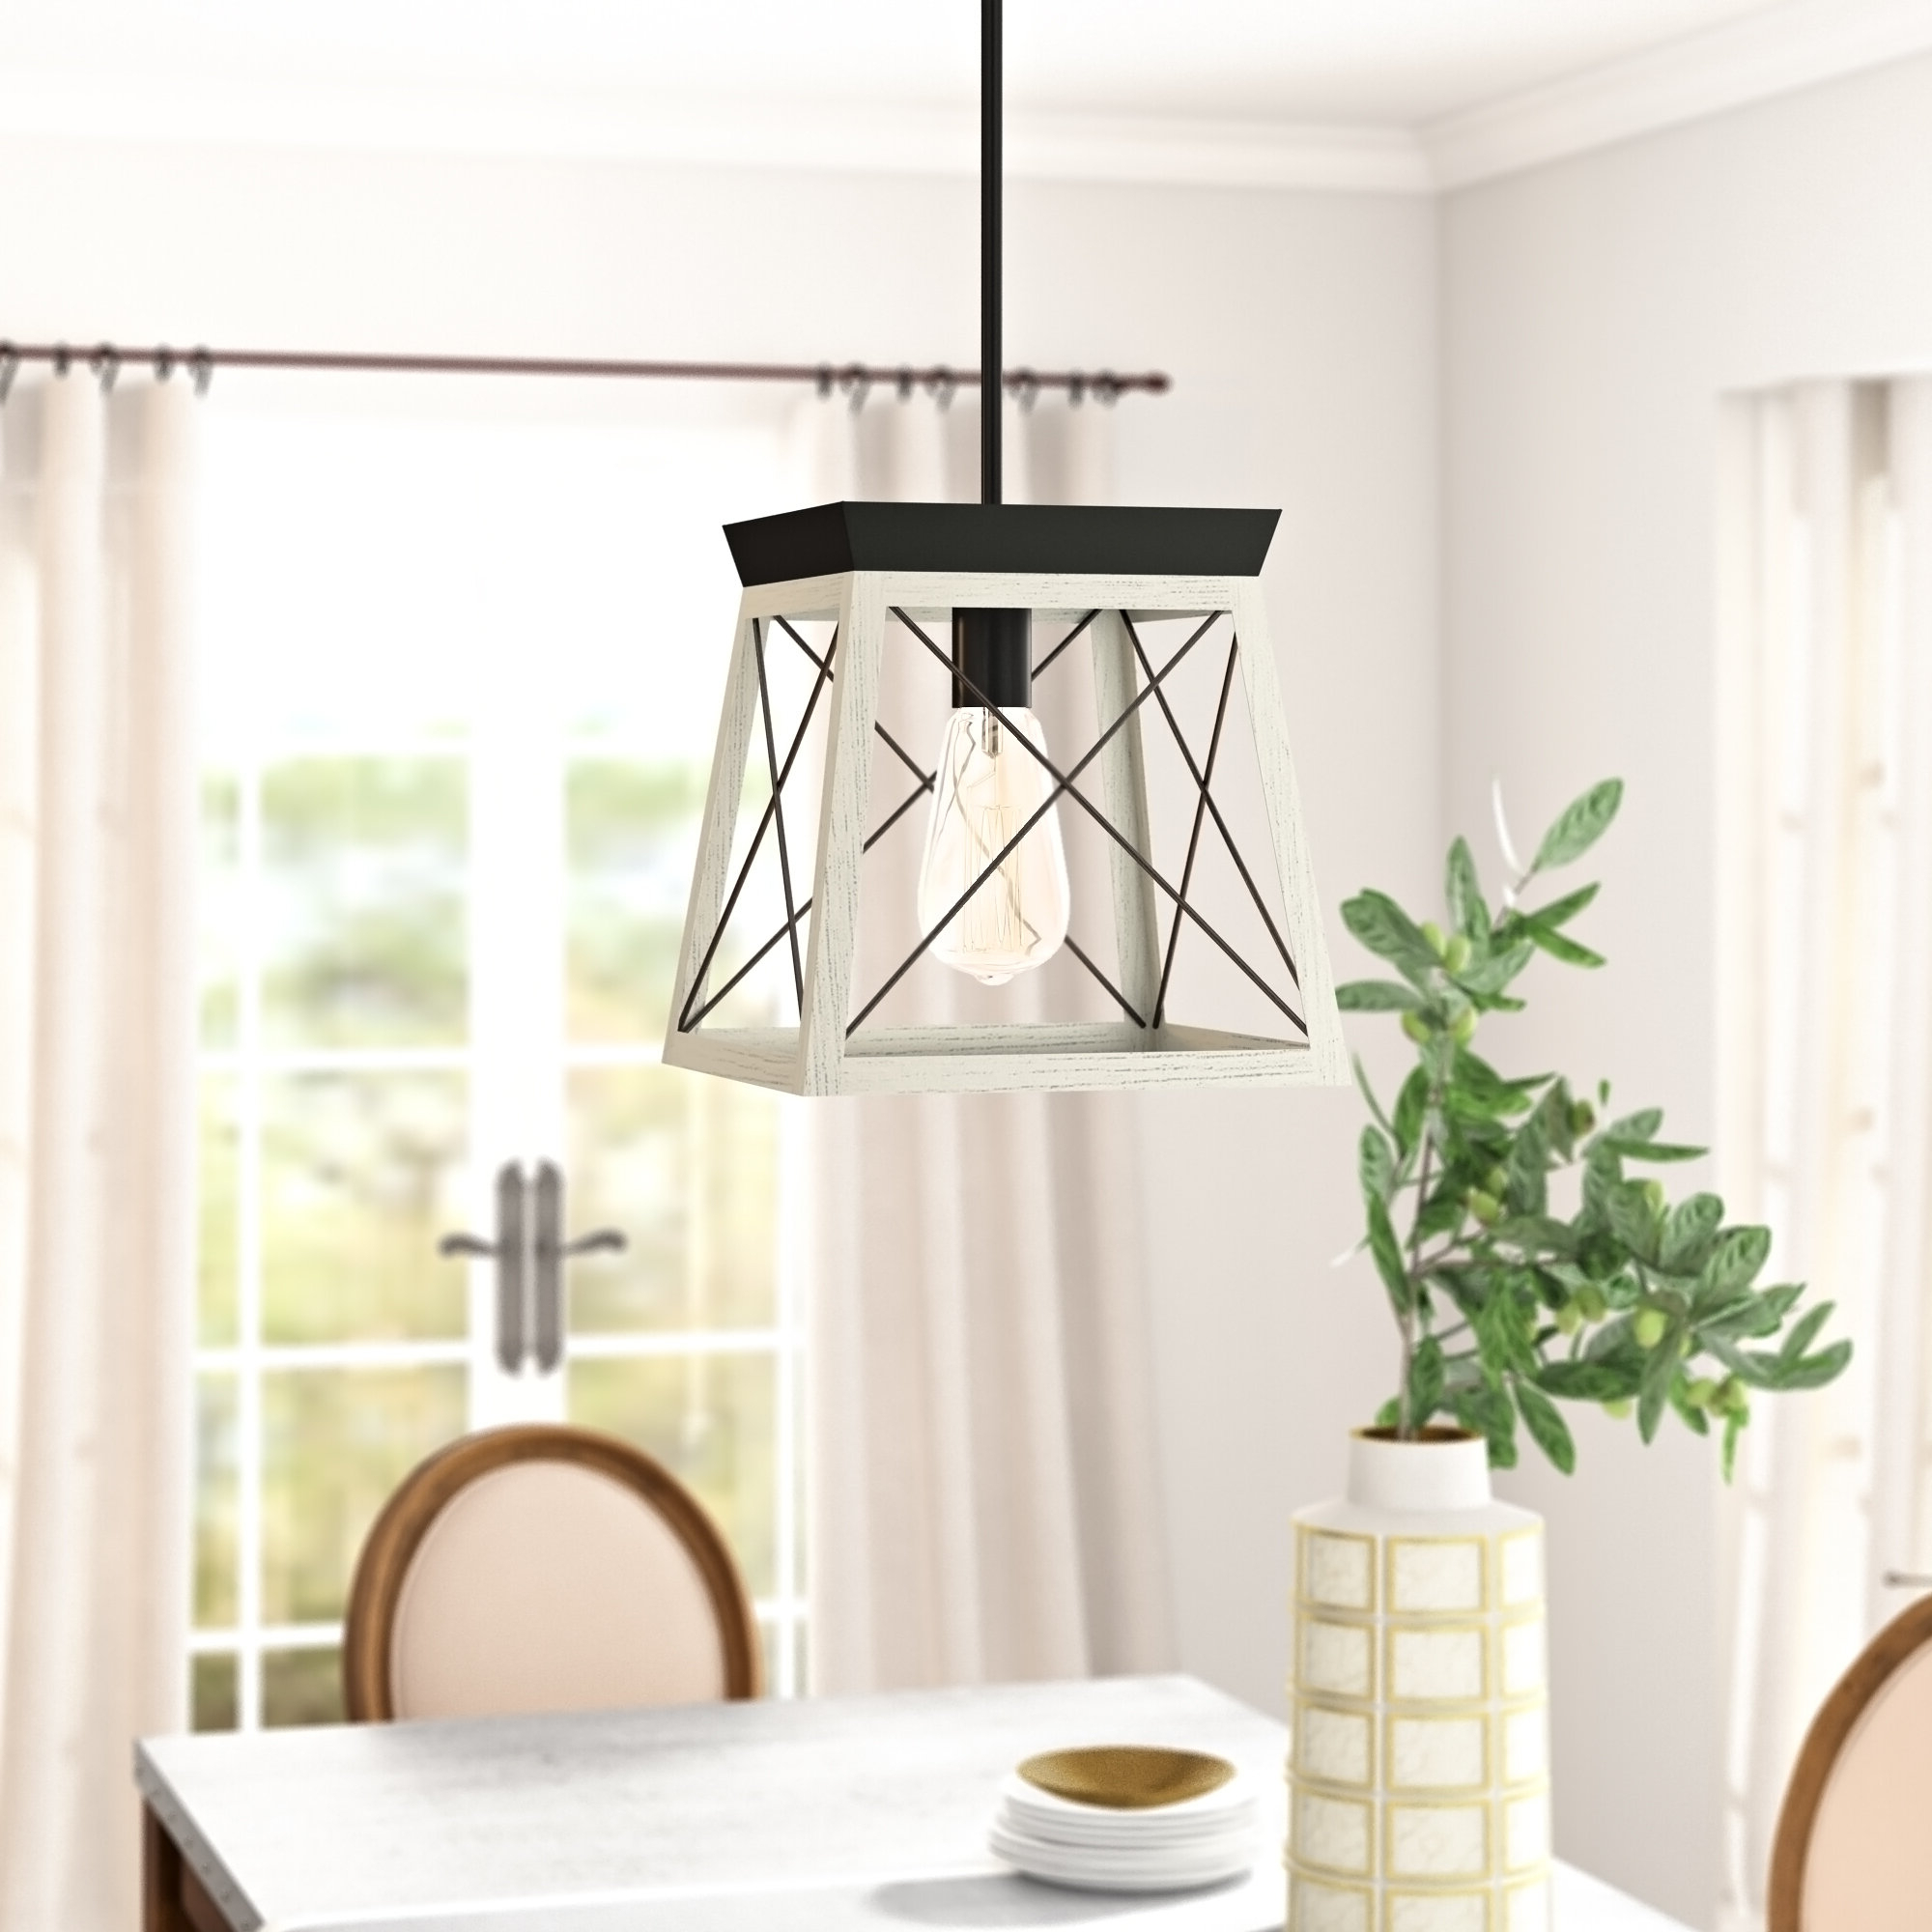 Most Popular Delon 1 Light Lantern Geometric Pendant Throughout Delon 1 Light Lantern Geometric Pendants (Gallery 4 of 20)